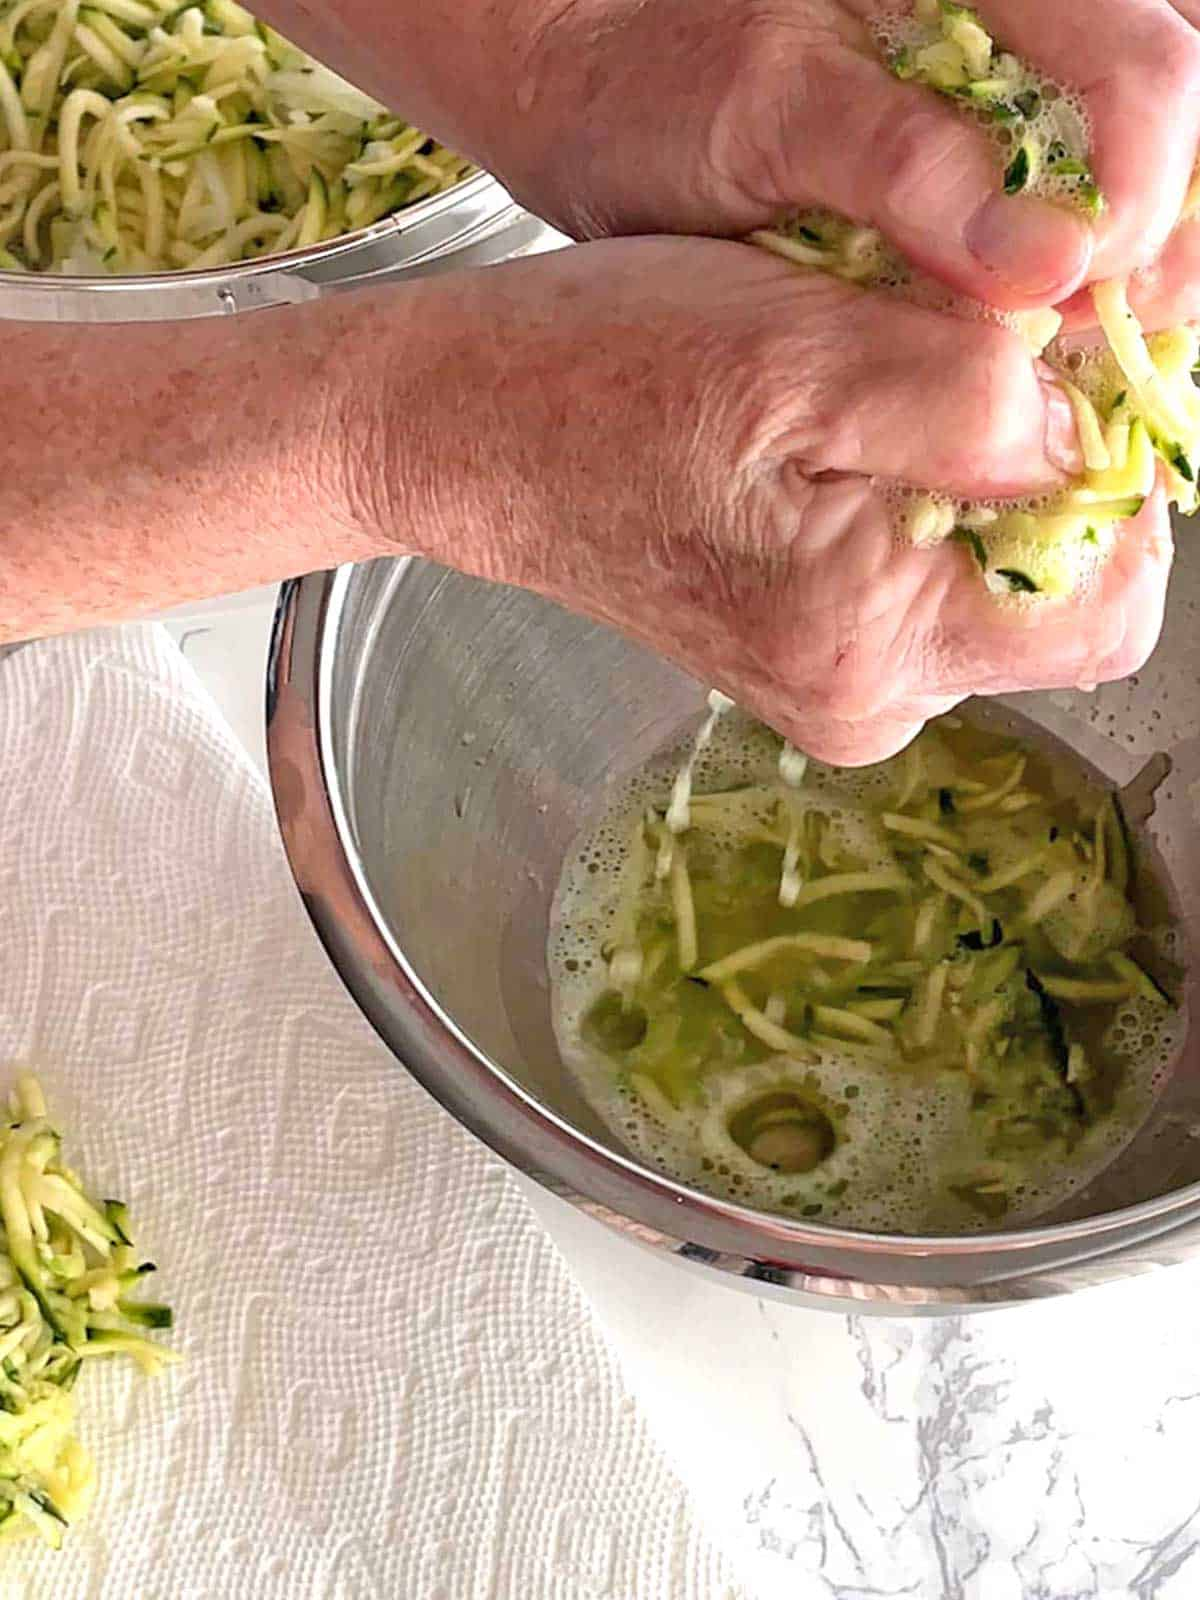 Squeezing liquid from grated zucchini and onion